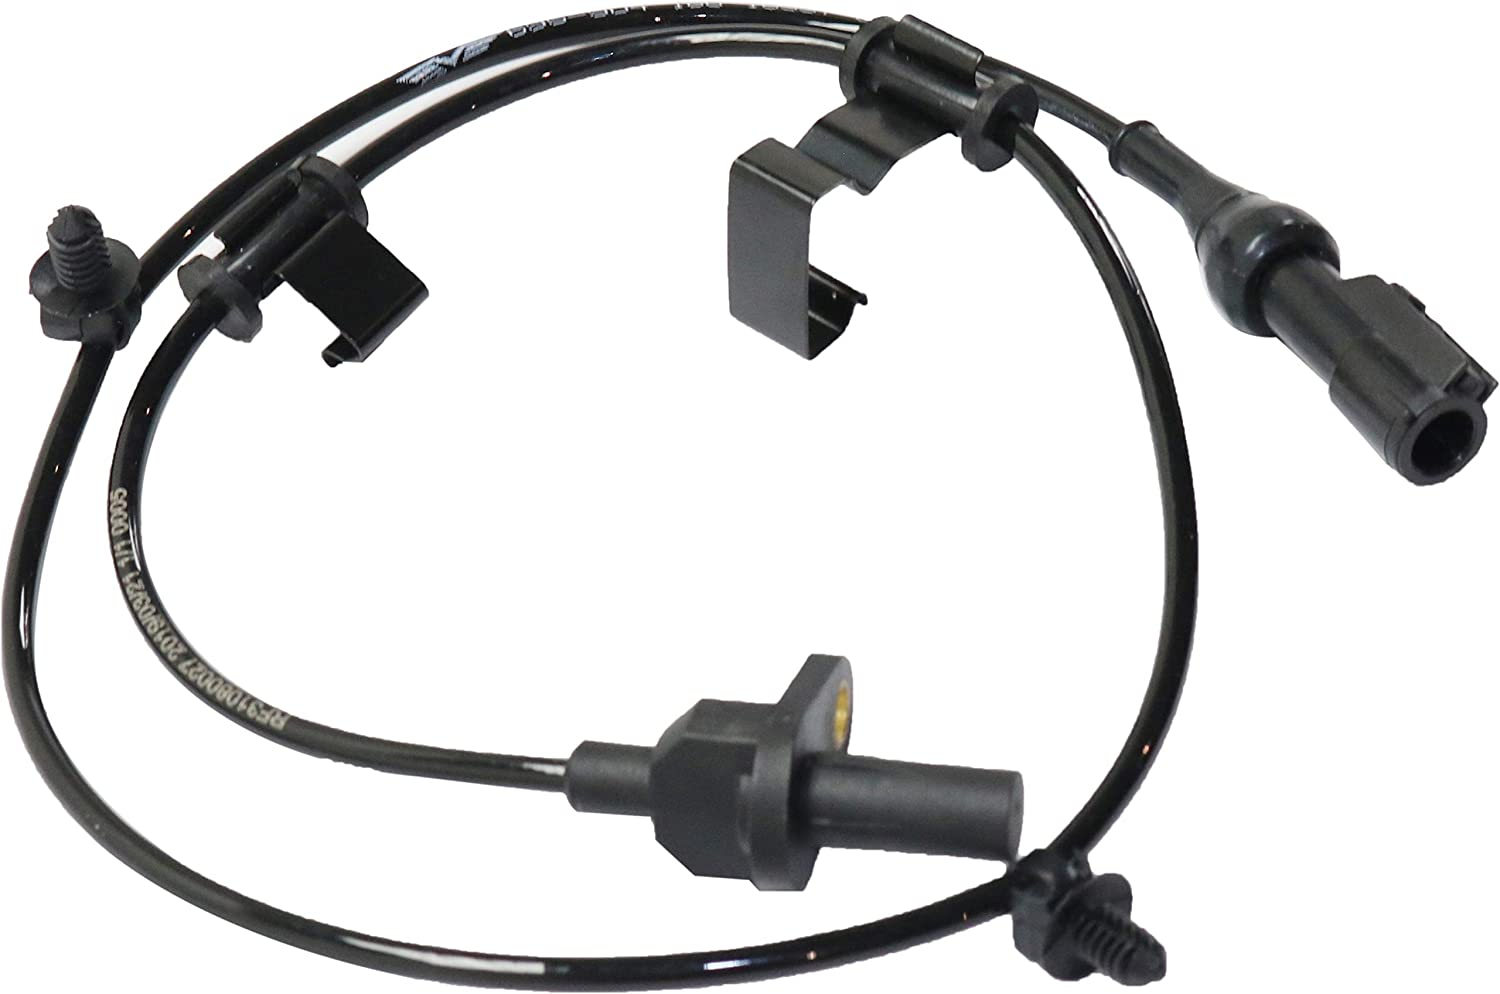 ABS Speed Sensor Compatible with 2007-2010 Ford Edge and Lincoln MKX Rear Right Side AWD 2 Male Pin-Type Terminals